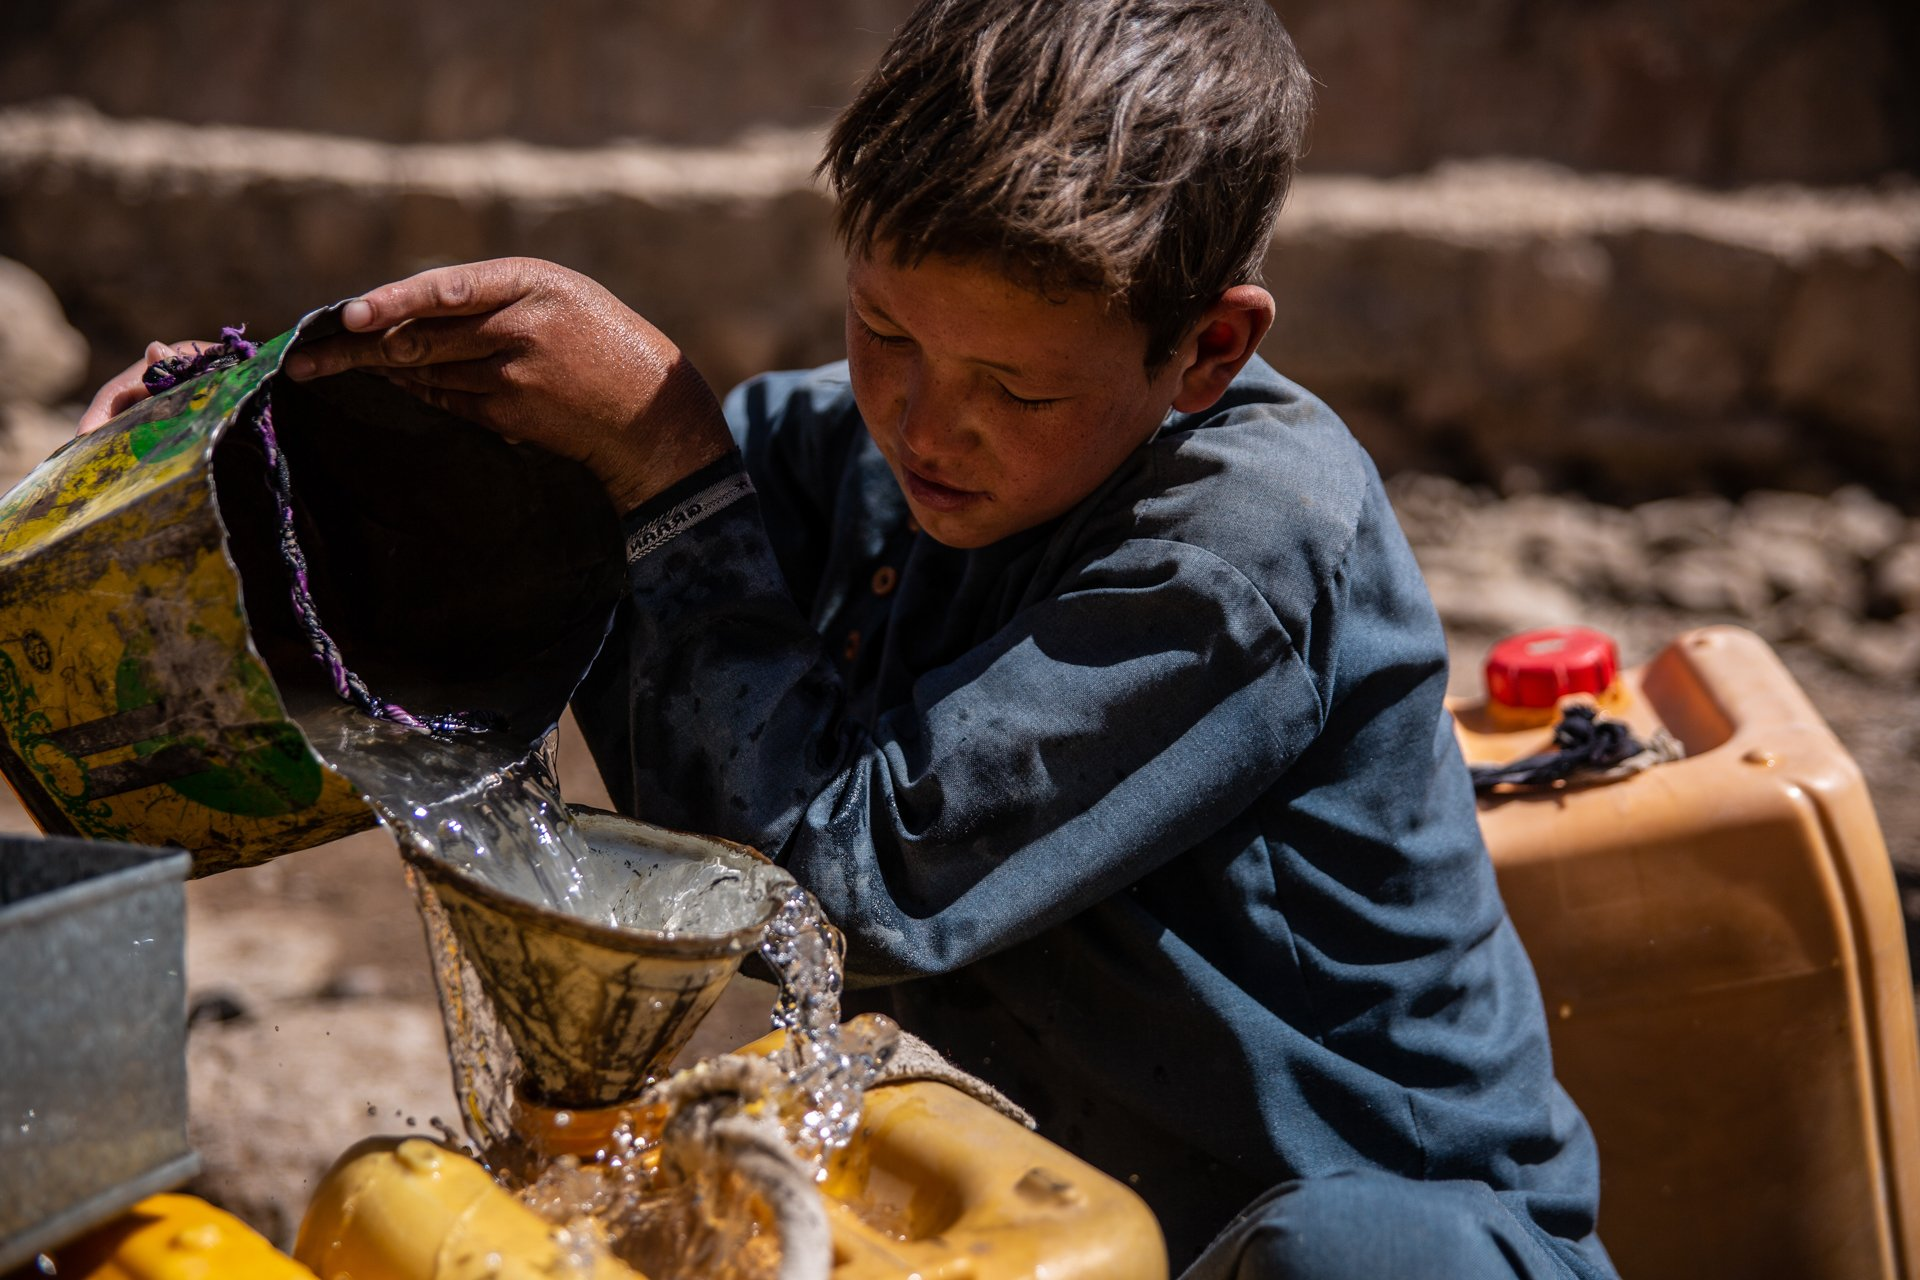 A young boy in Afghanistan pours water